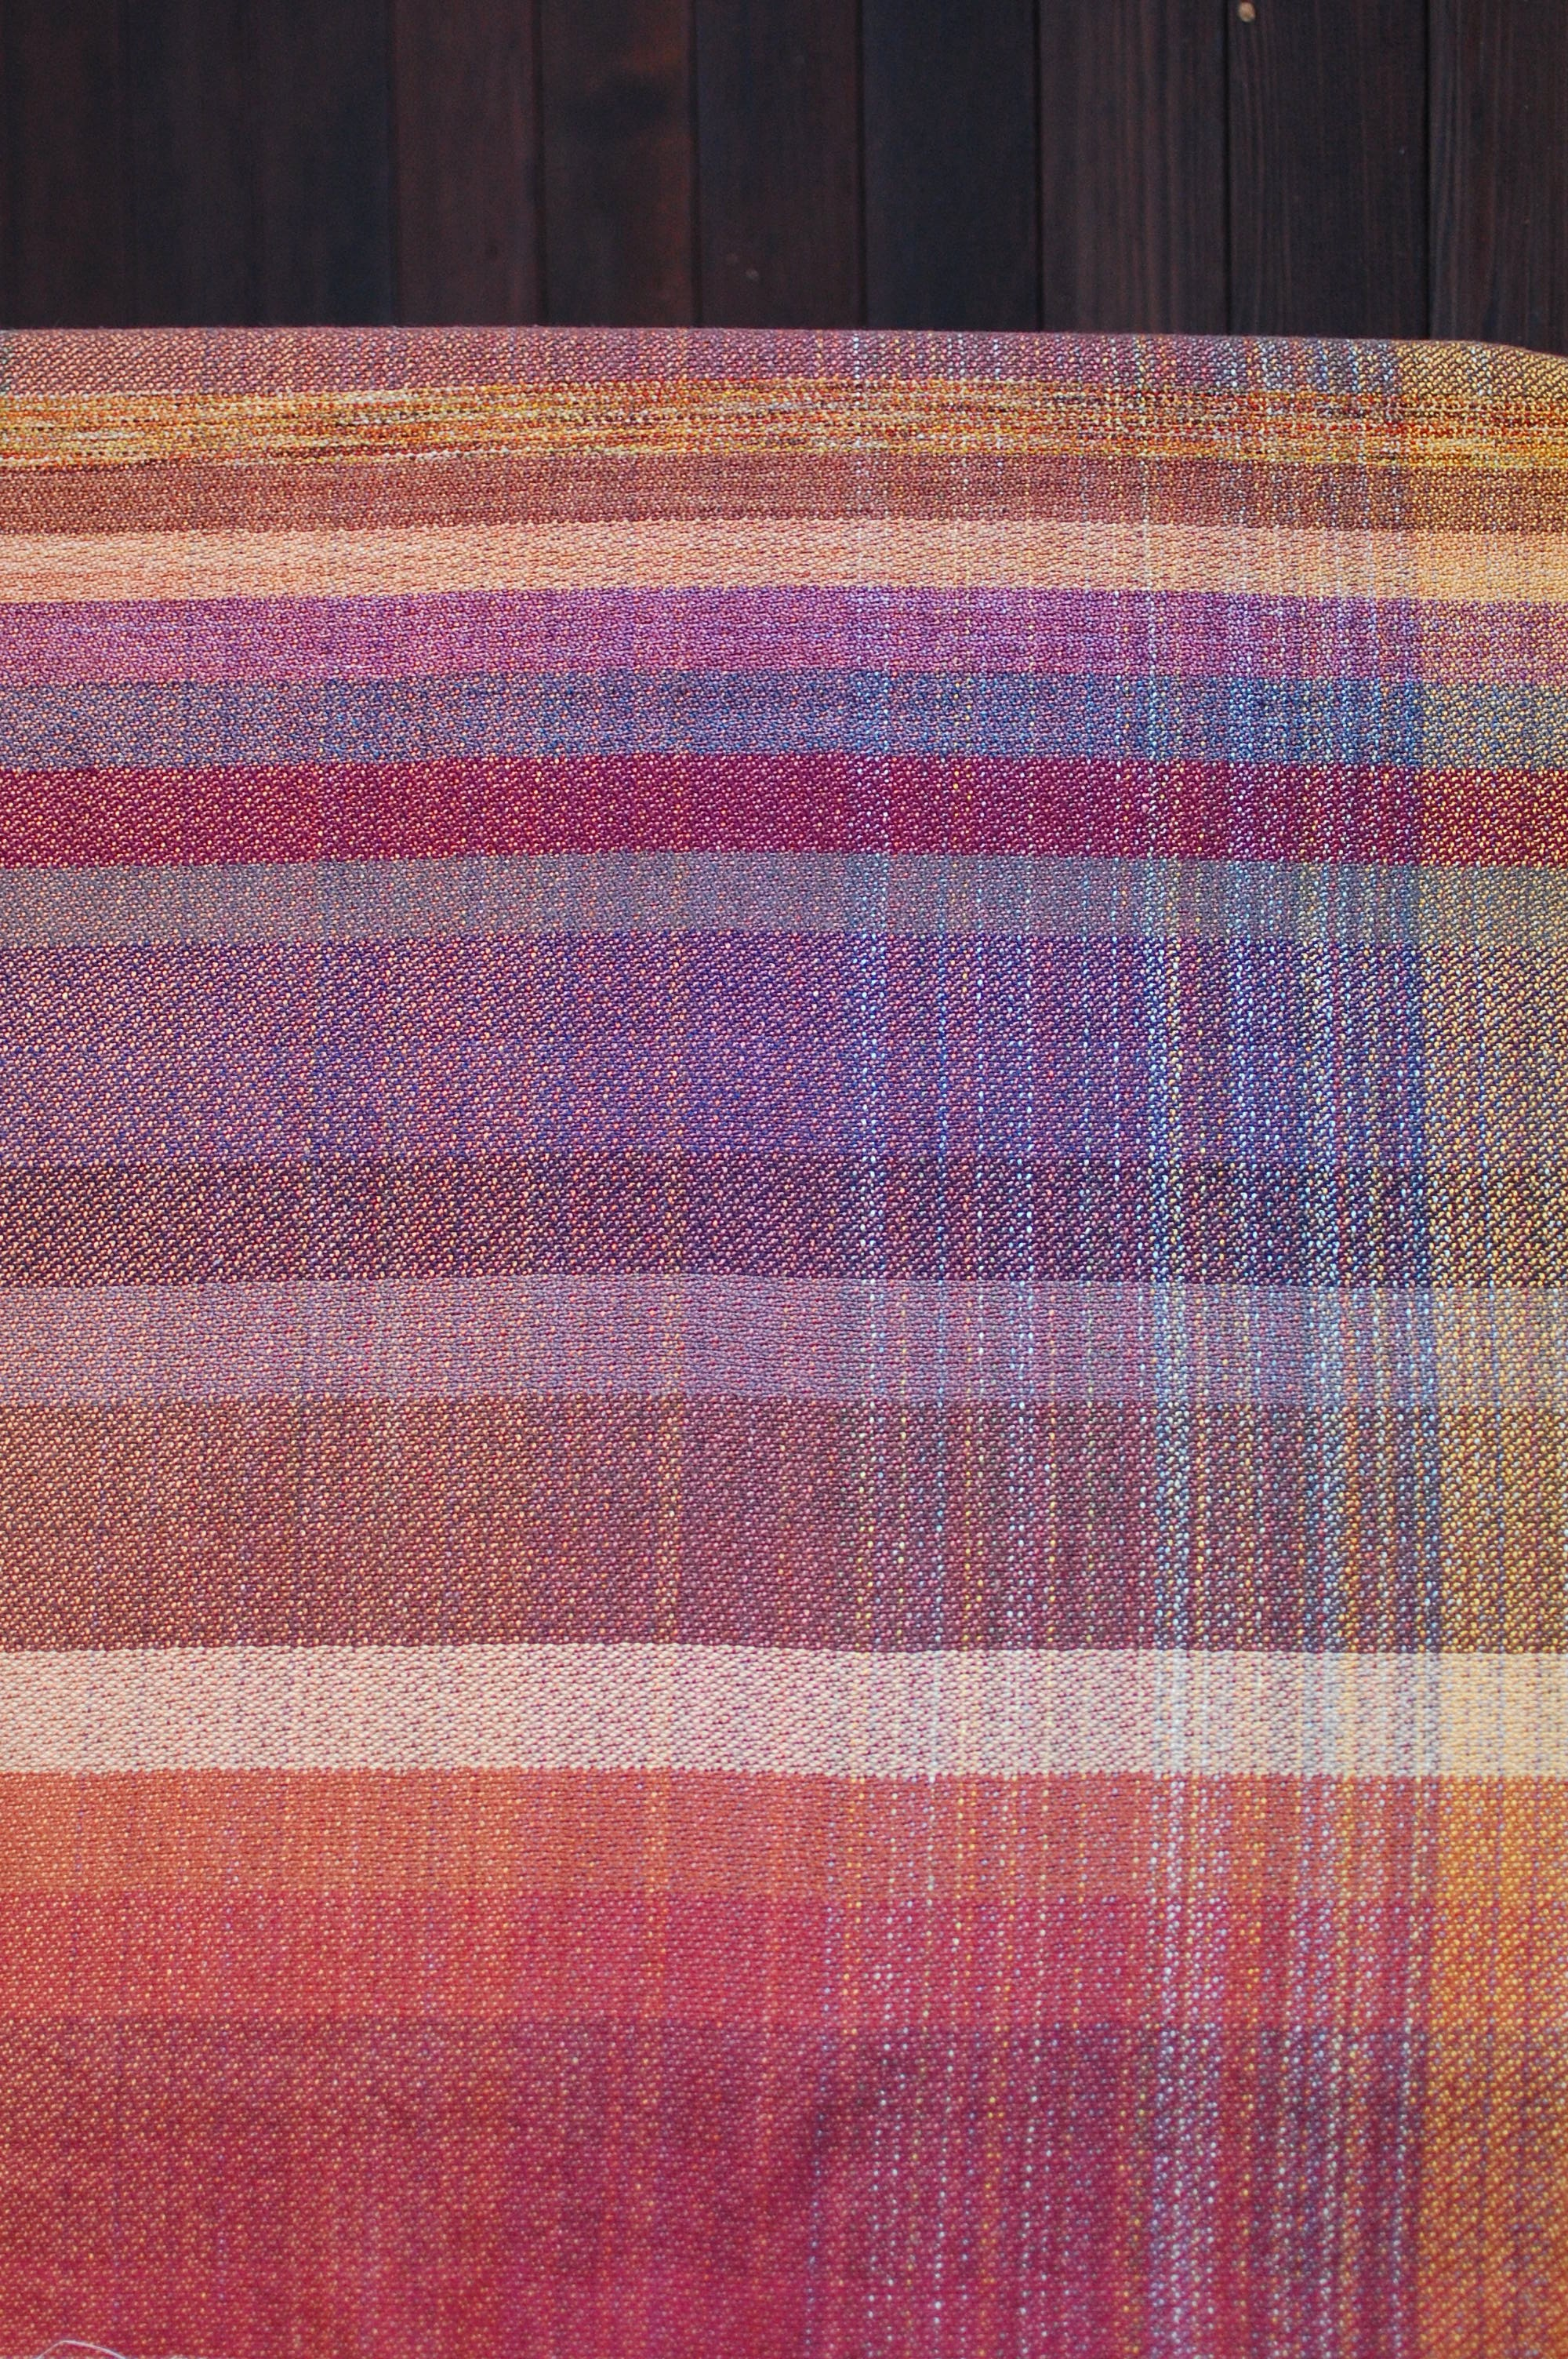 Finished sample piece - brown cottolin weft at top, followed by the wools with cottons on bottom.